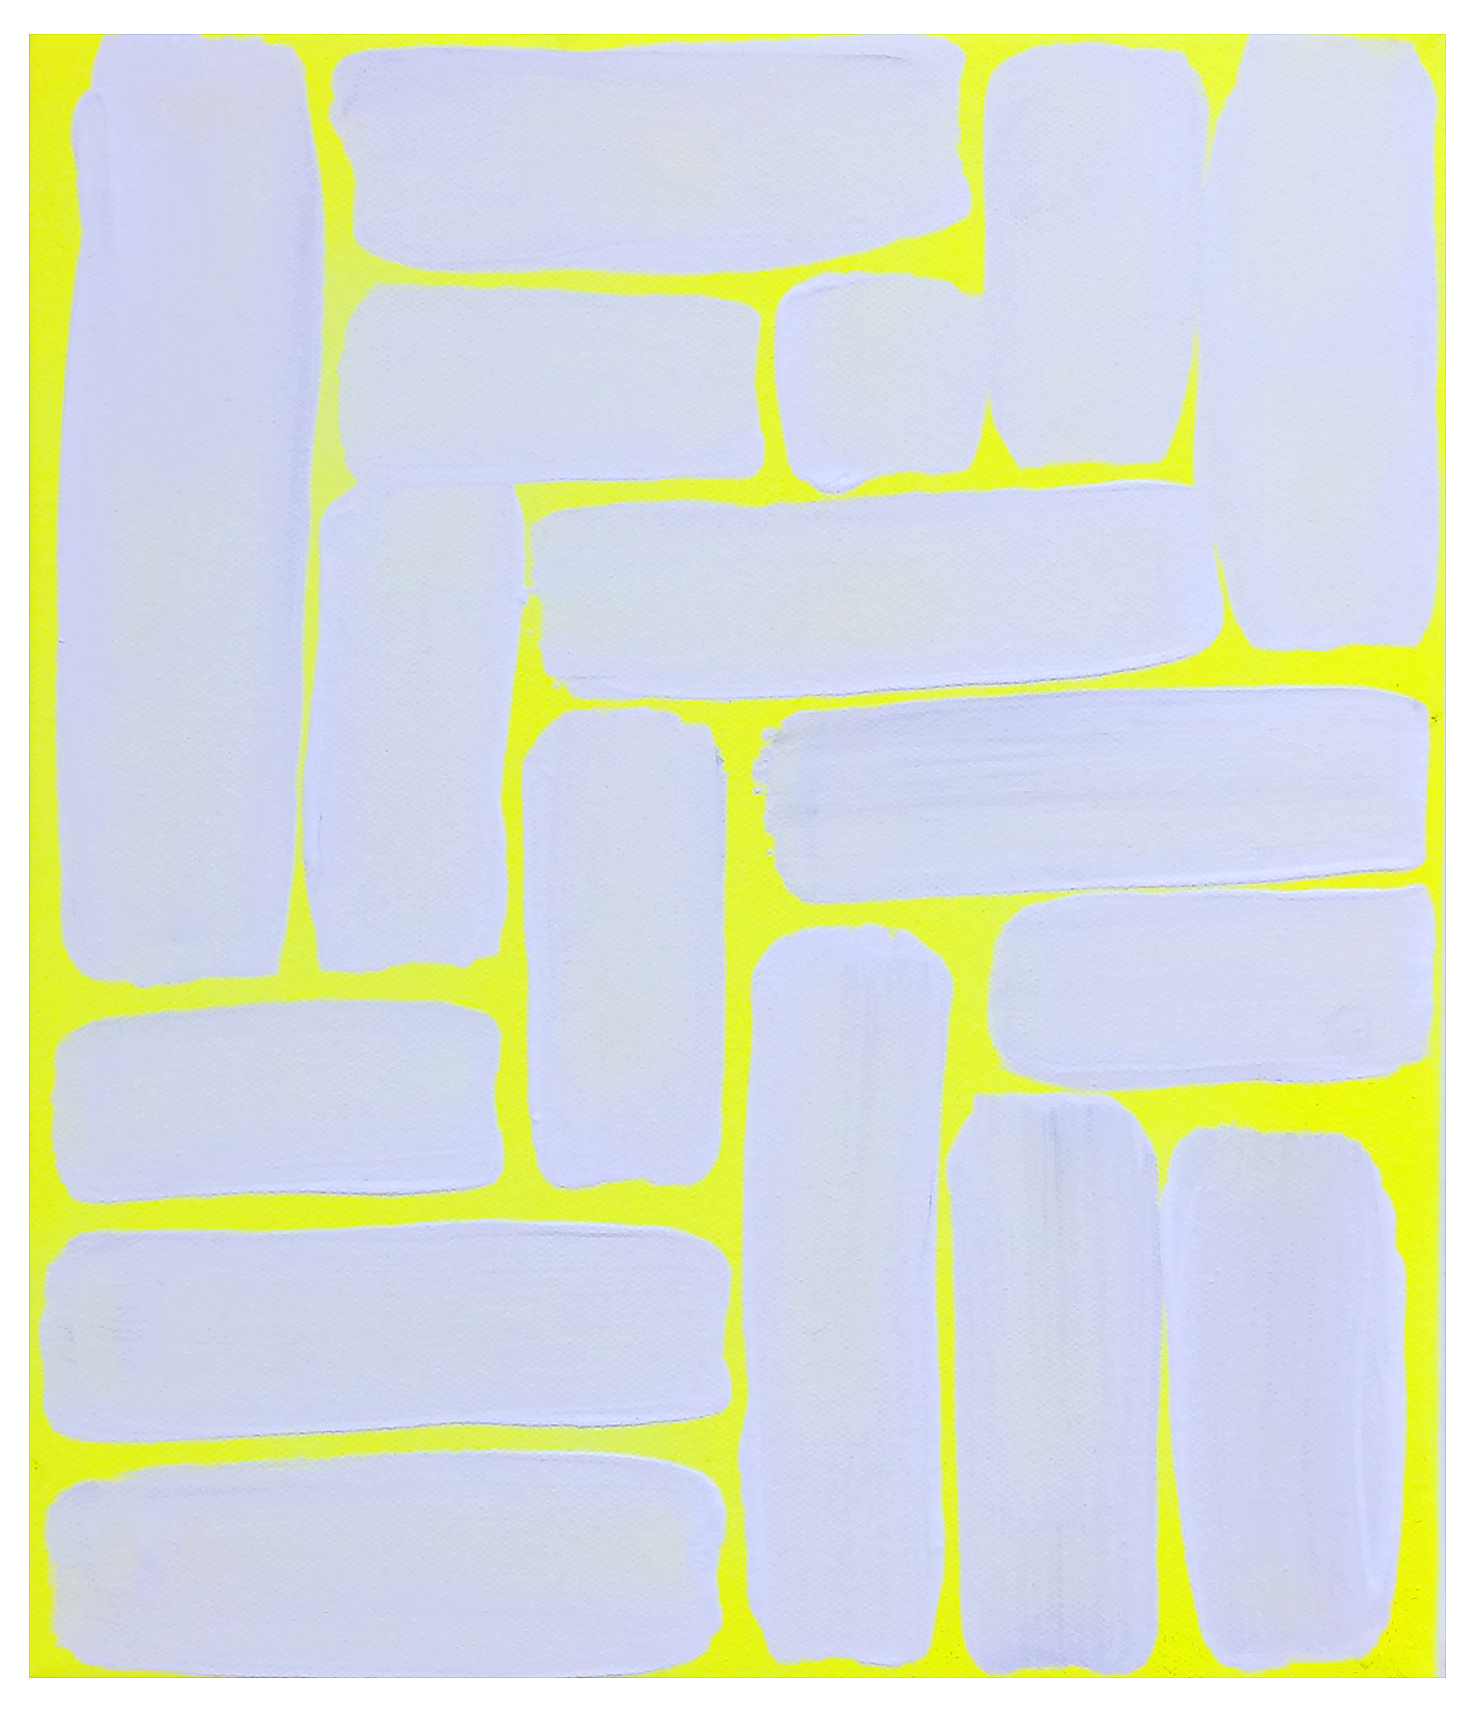 'Untitled', 2014, gesso and spray paint on canvas, 20 x 25 cm